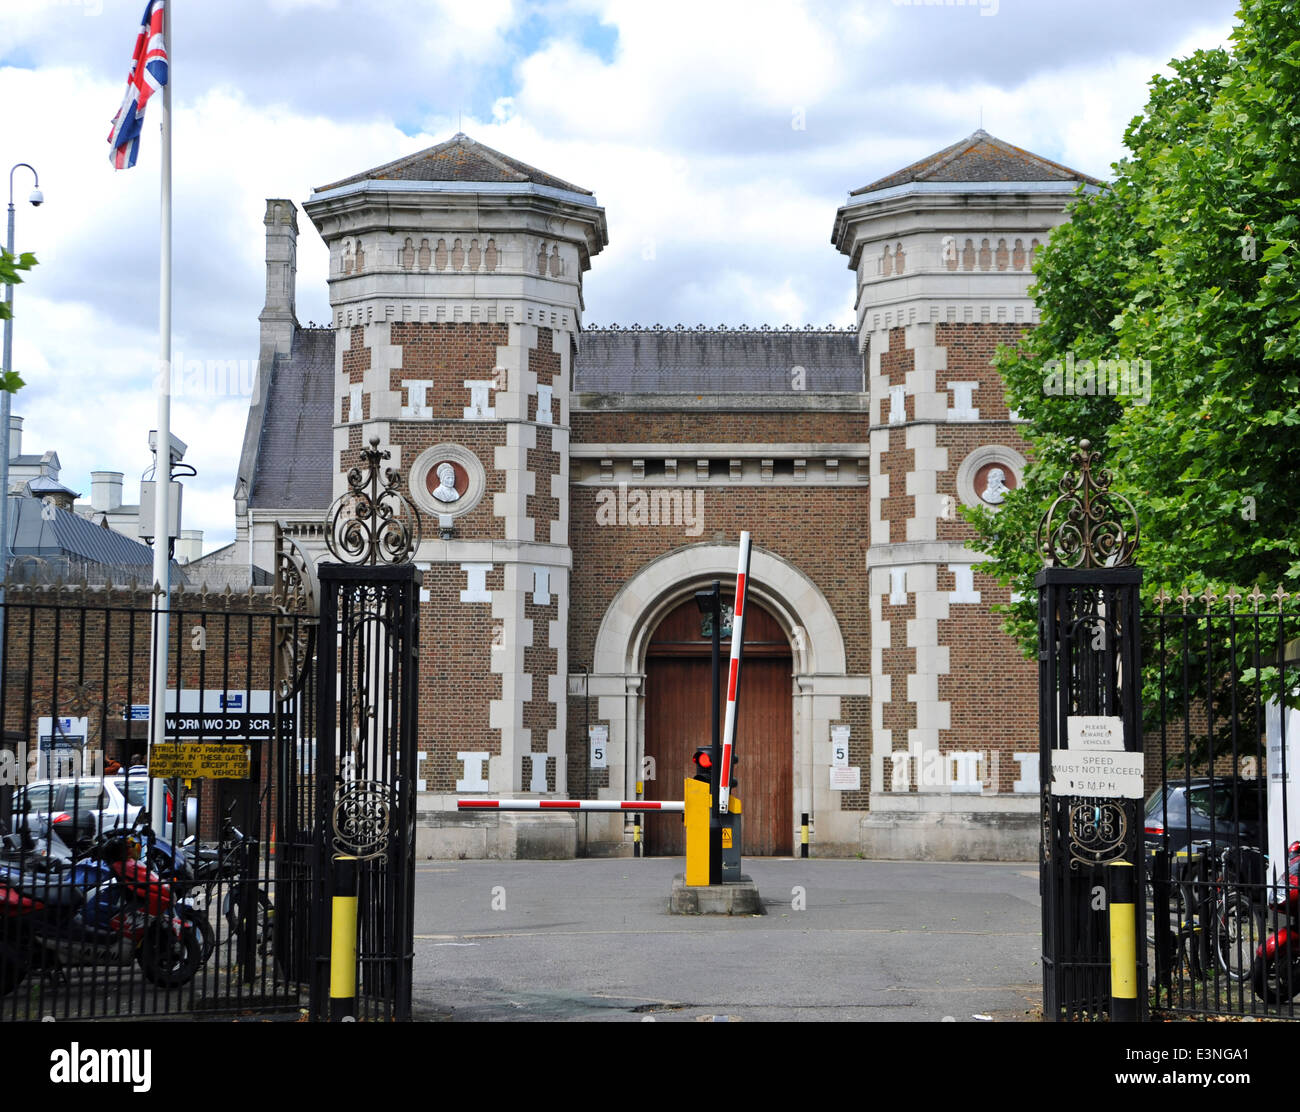 Her Majestys Prison Wormwood Scrubs at East Acton in the London Borough of Hammersmith and Fulham - Stock Image